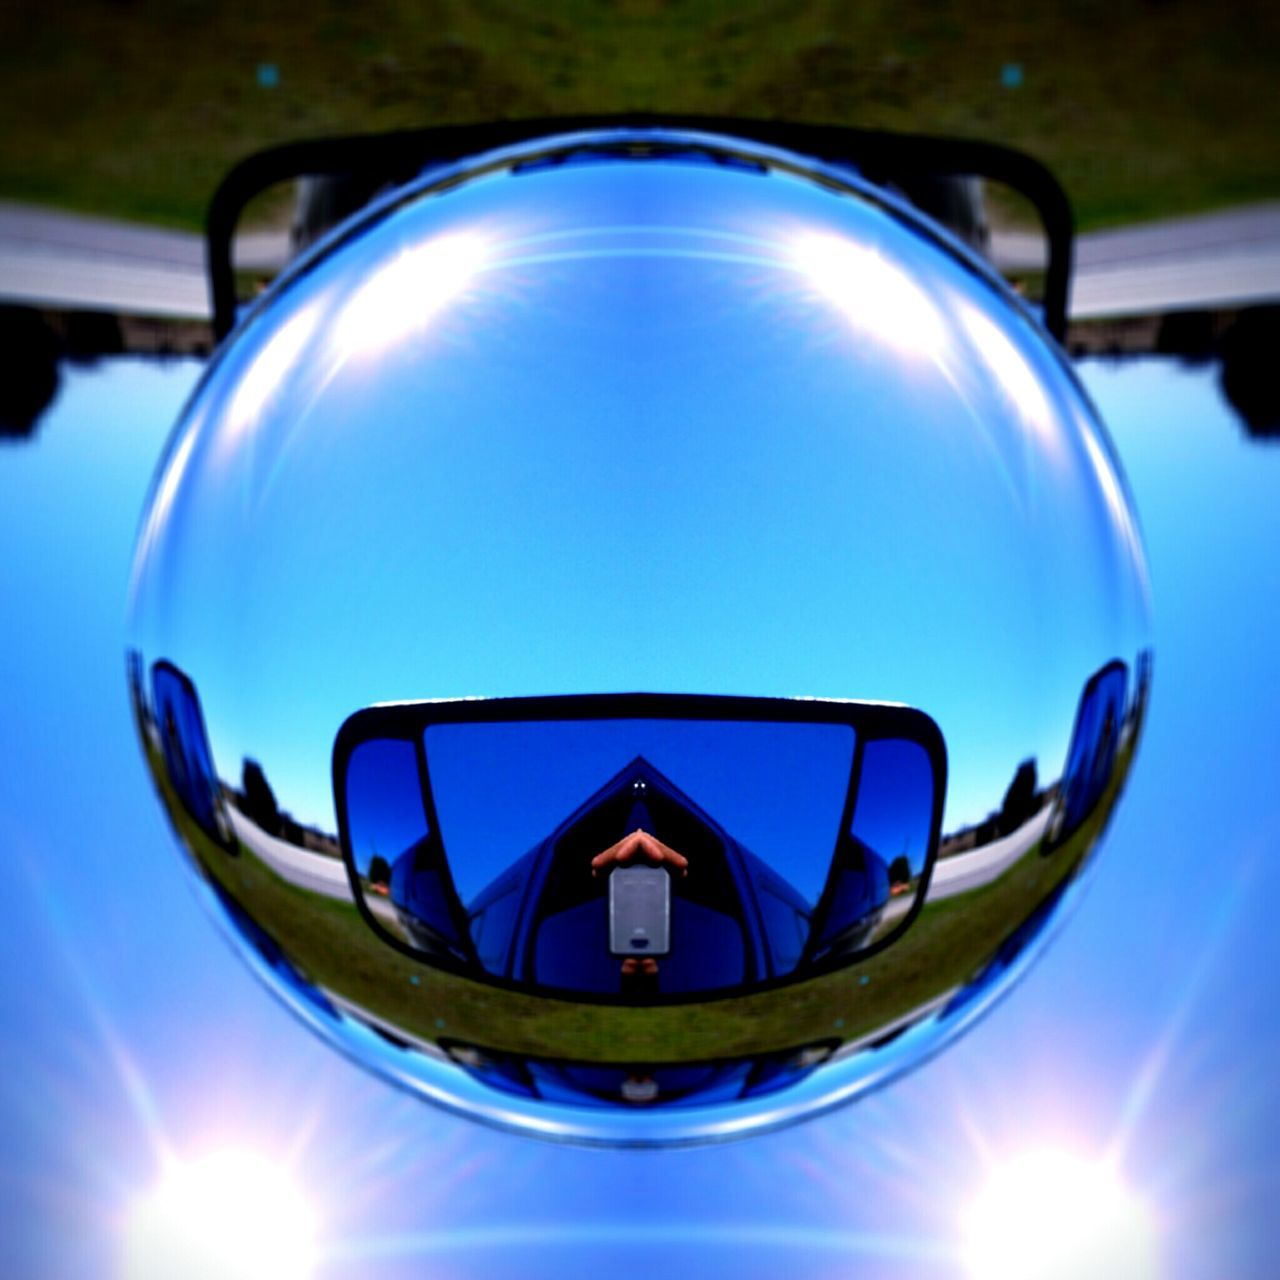 Blue Car Reflection Close-up Front View Side-view Mirror Outdoors Vehicle Mirror No People Day Motorsport Abstract Mirror Reflection EyeEmNewHere Hello World